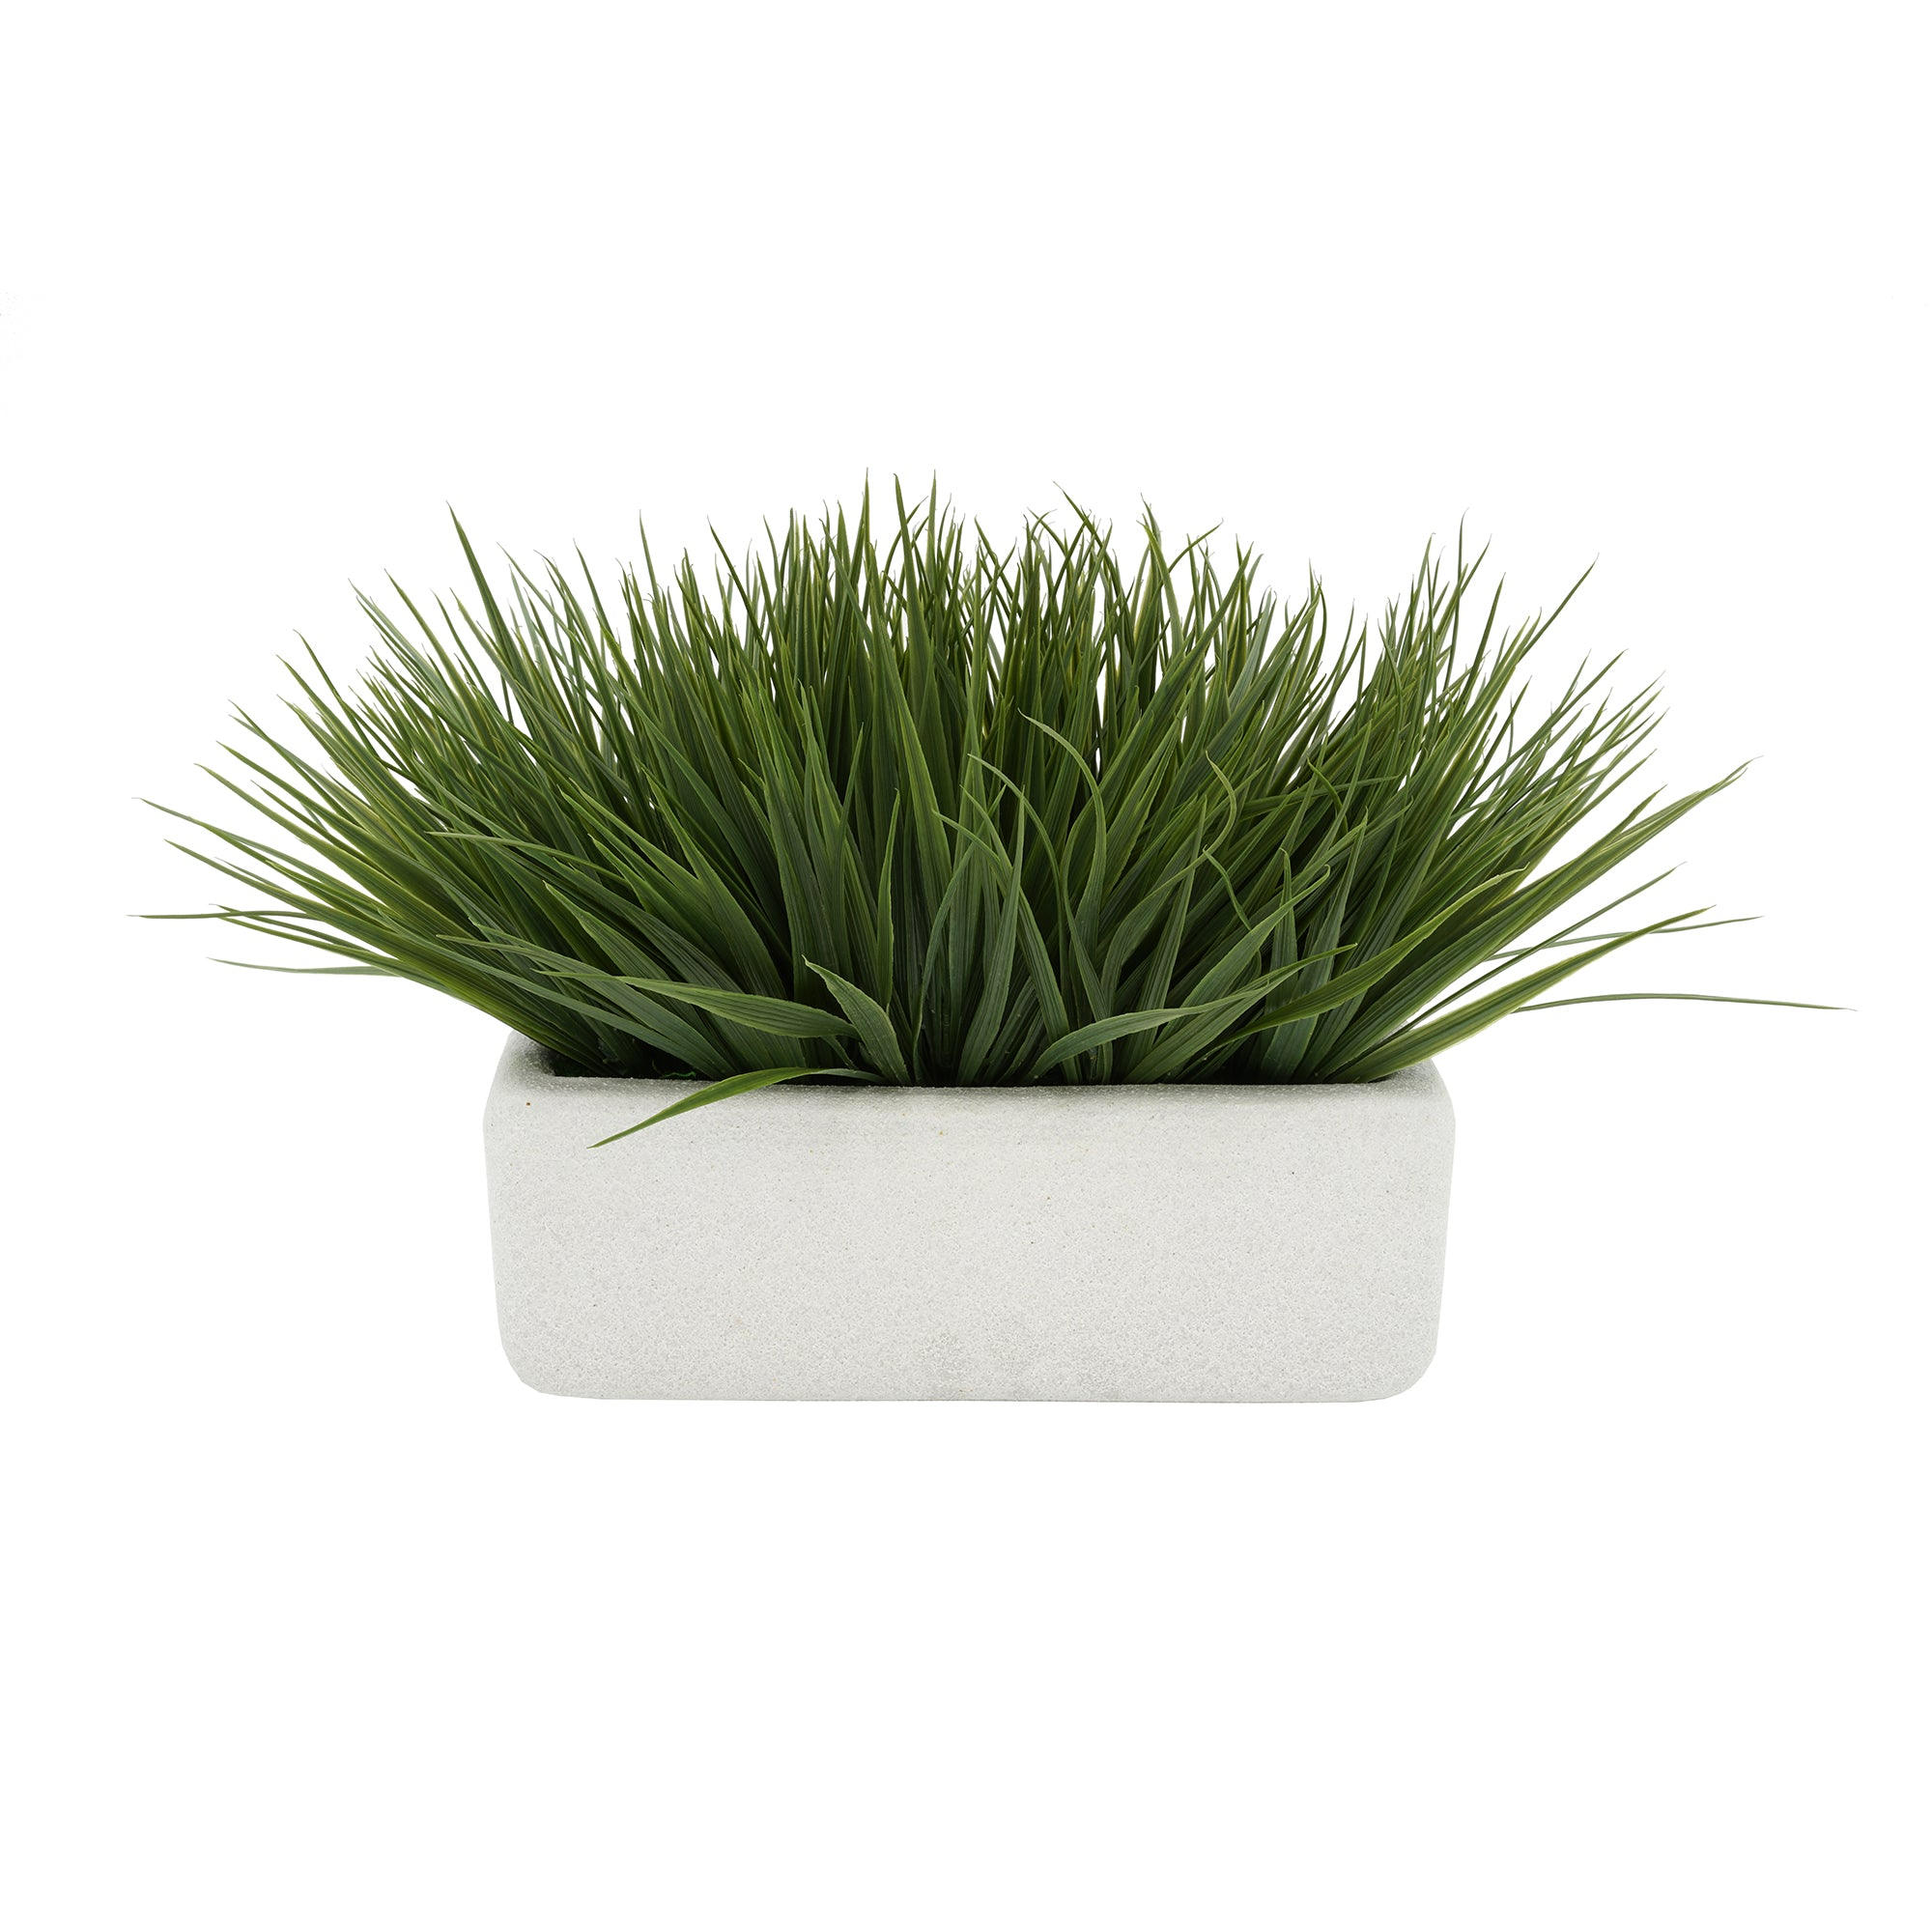 "Artificial Green Farm Grass in 11"" White Sandy Texture Ceramic"